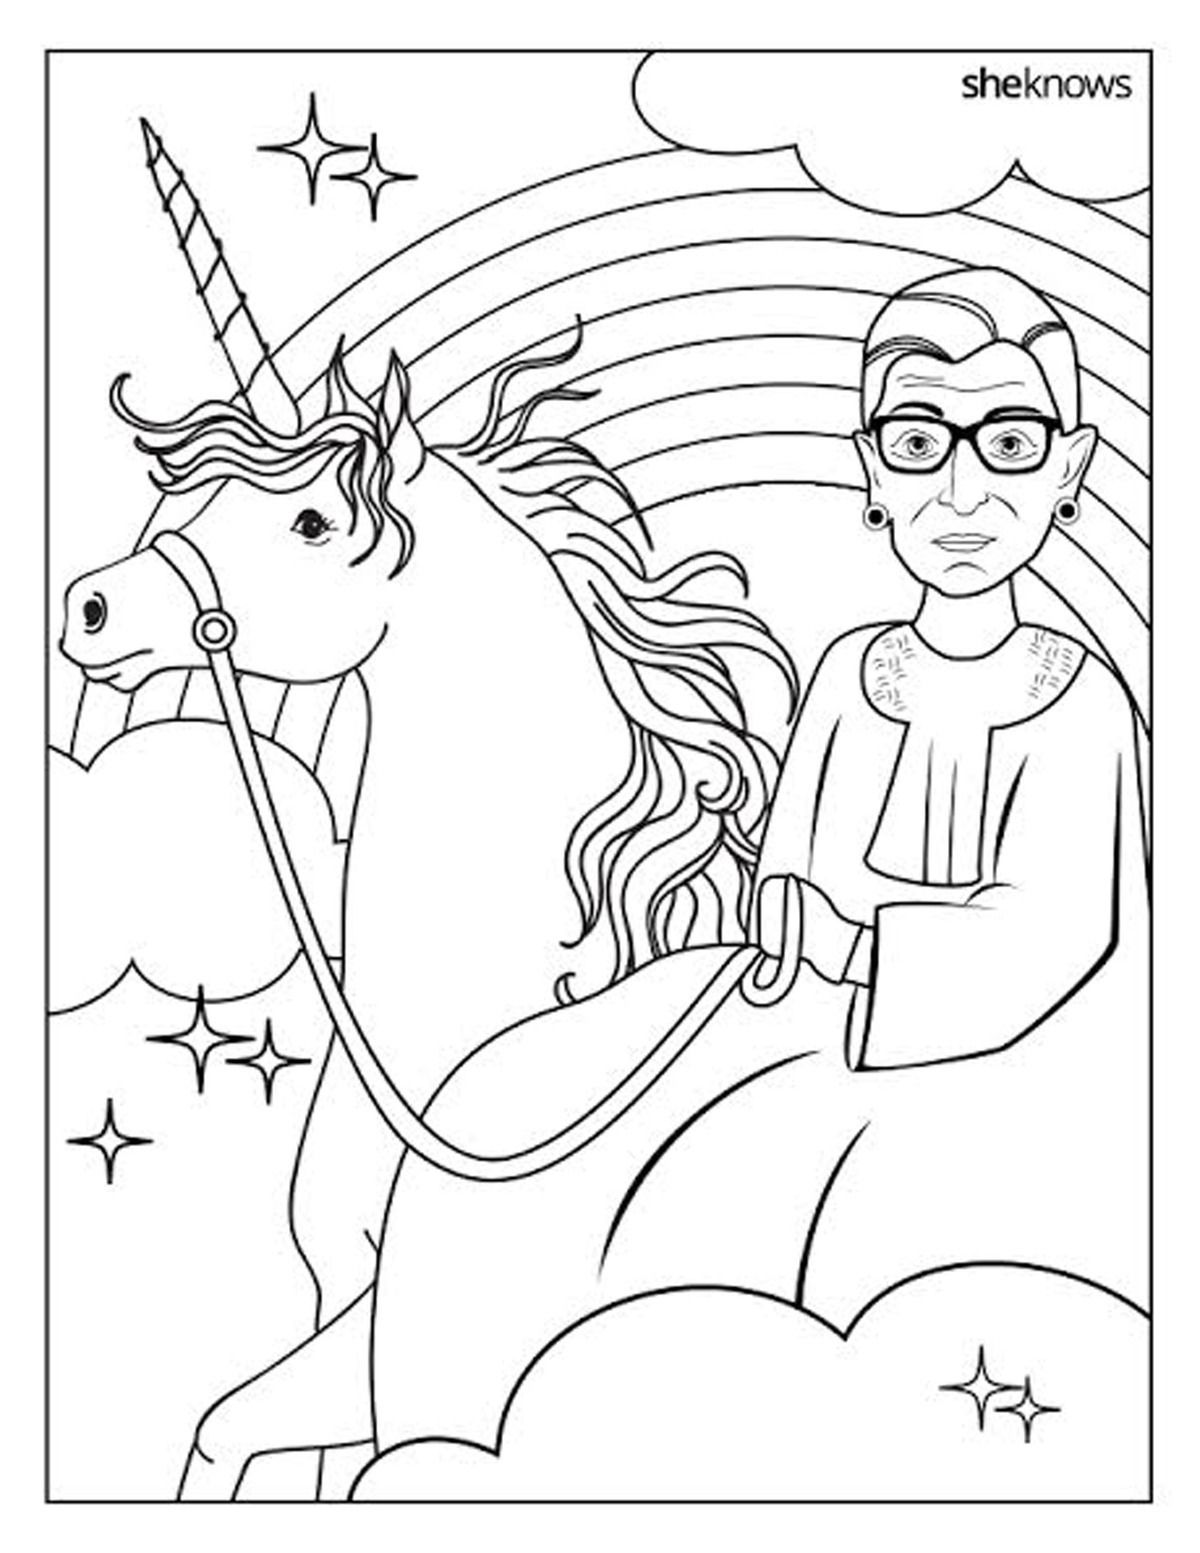 Notorious Rbg Riding A Unicorn Makes For An Epic Coloring Book